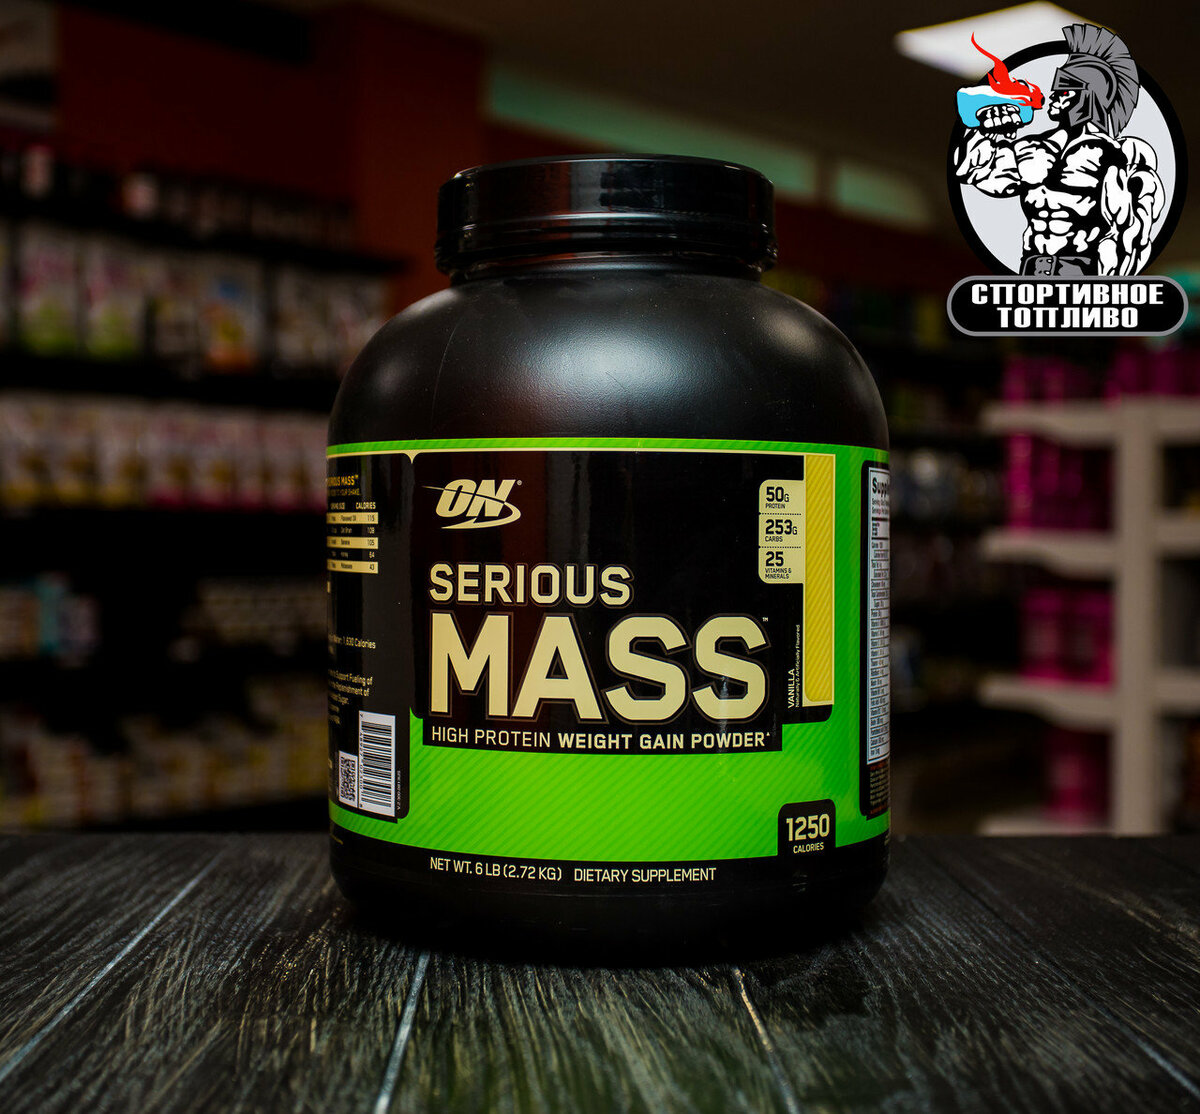 Как пить гейнер serious mass от optimum nutrition для набора массы?